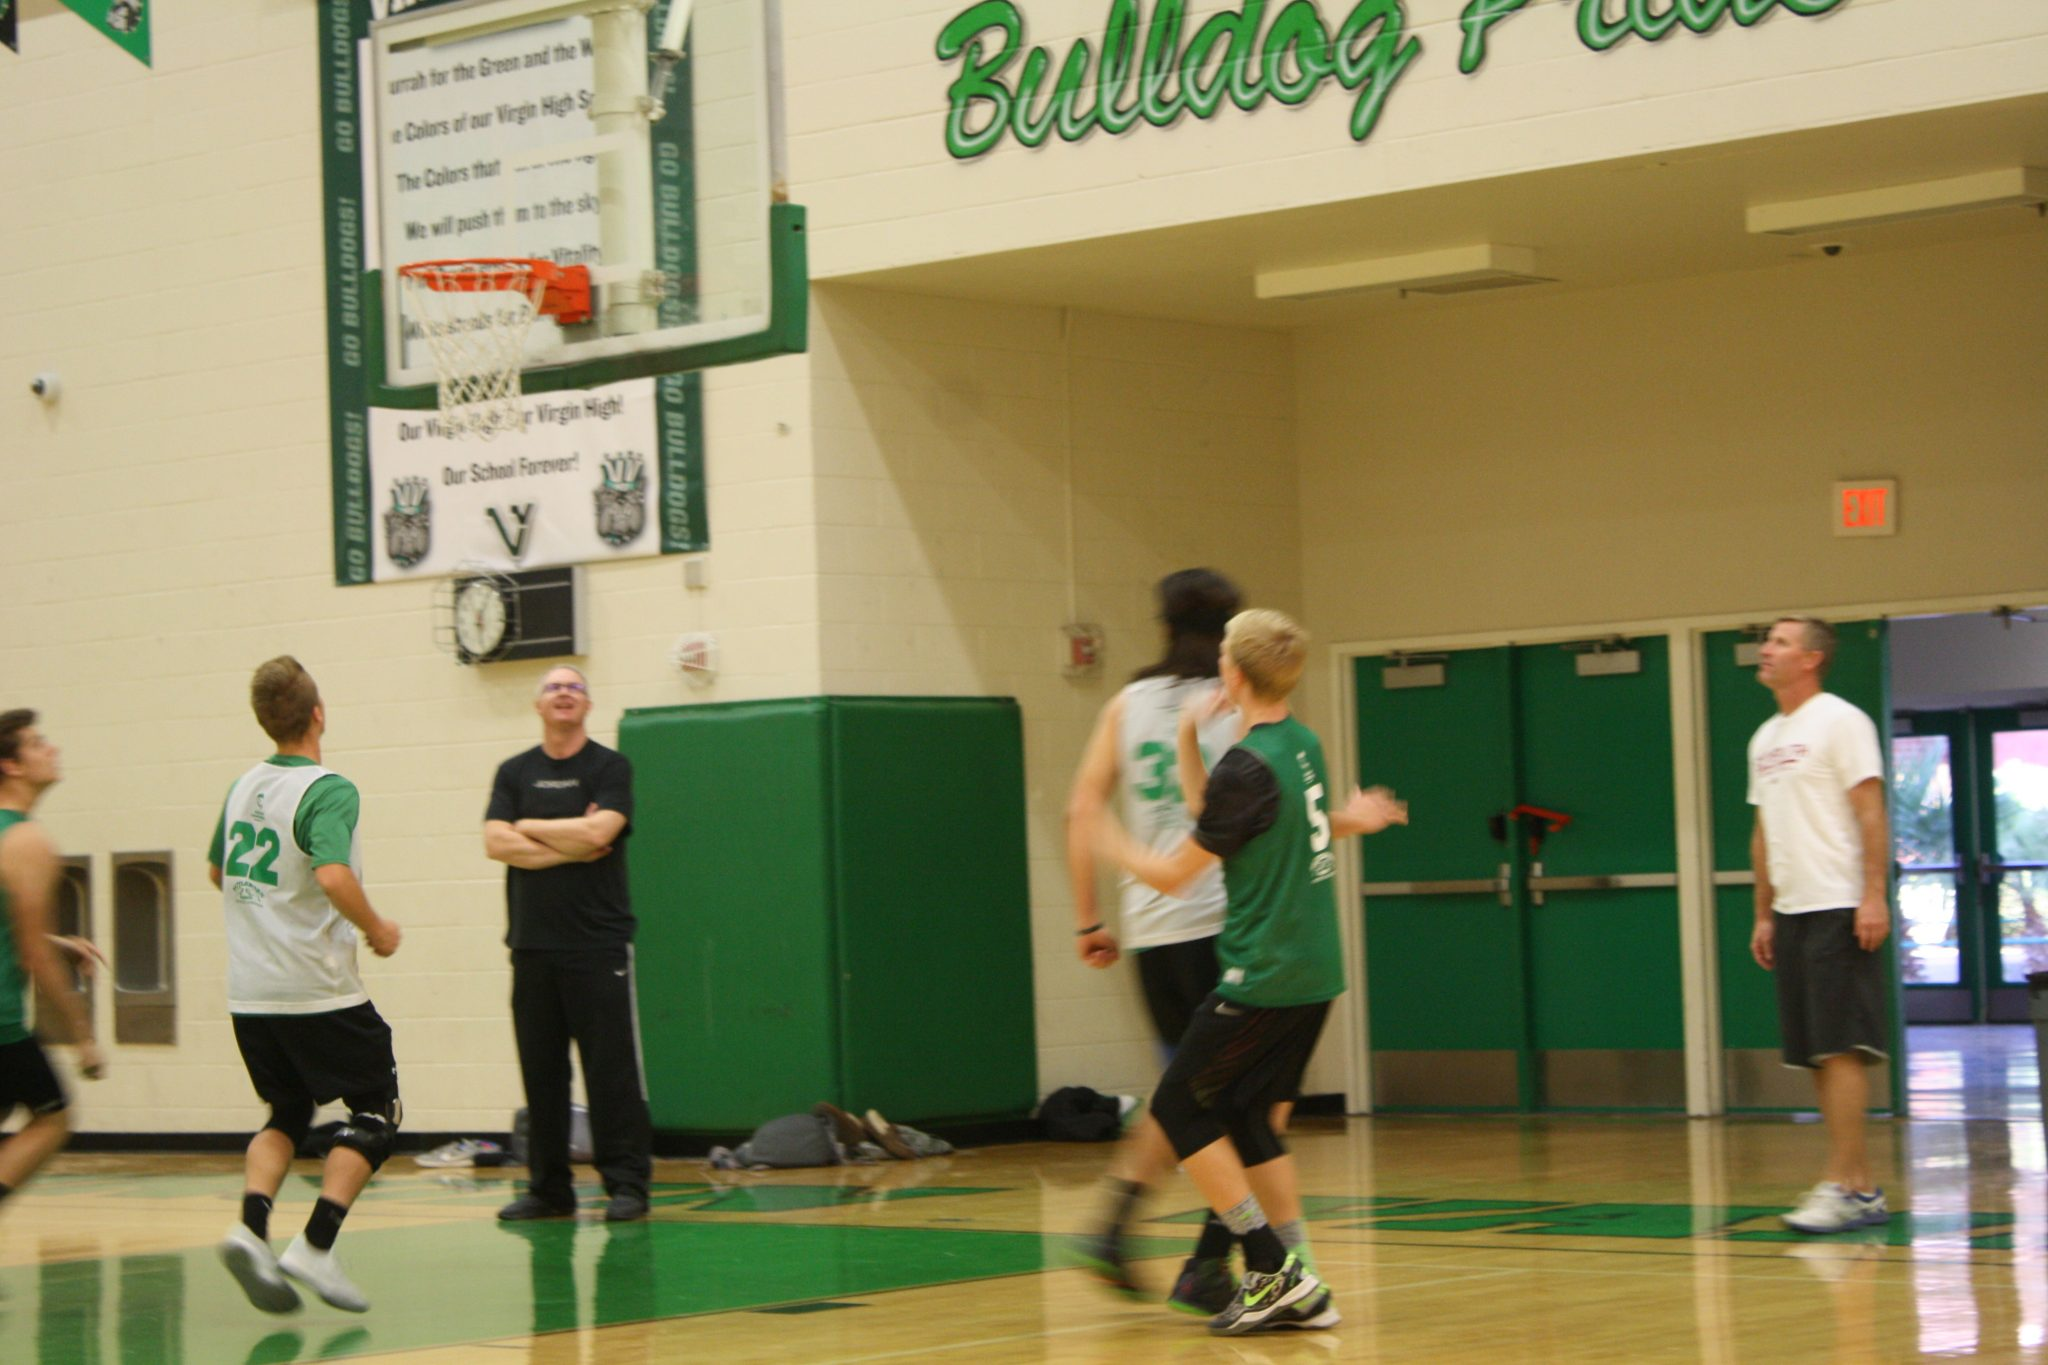 Bulldogs basketball starts anew with coach and players